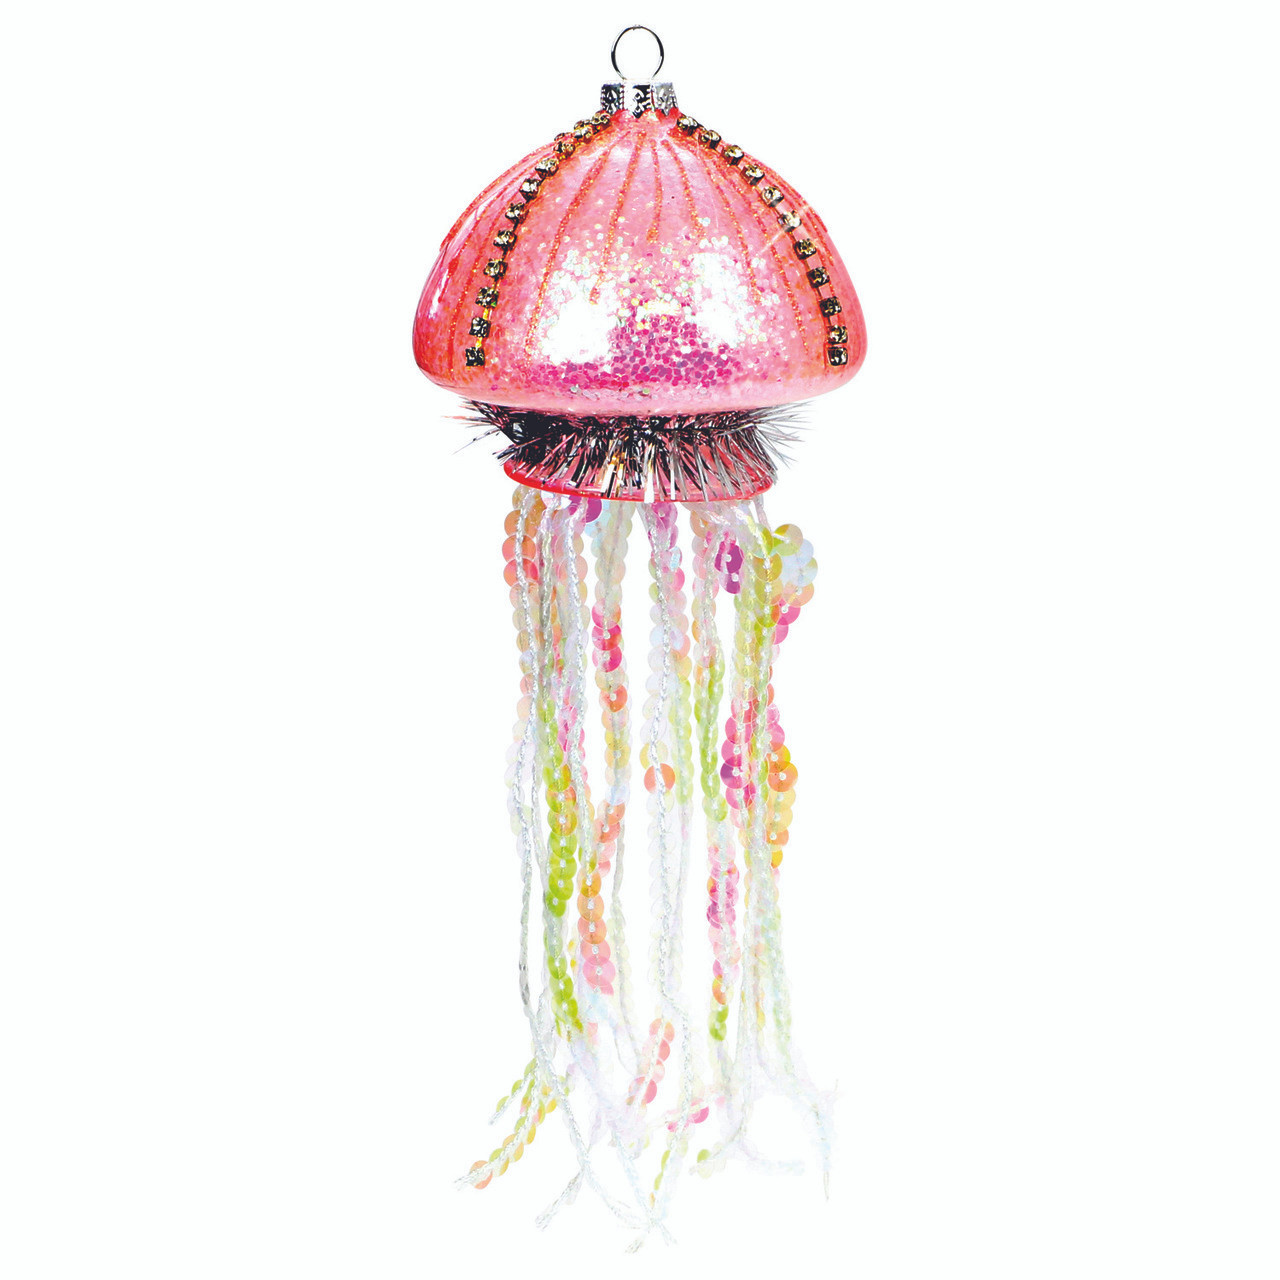 Glass Pink Jellyfish Christmas Ornament And Suncatcher 5 5 Inches